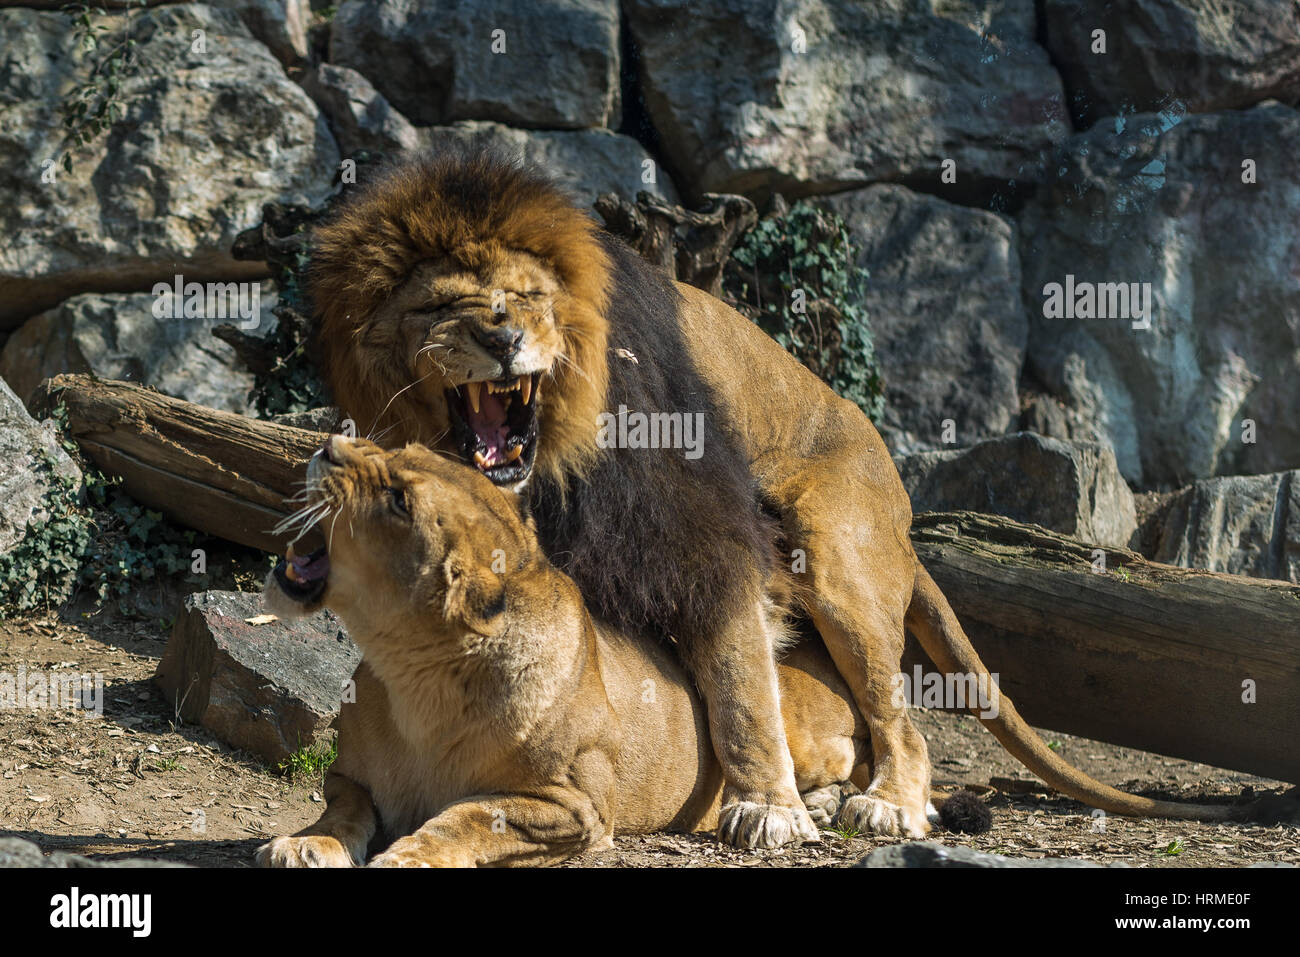 lion and lioness mating in a wildlife park, the male lion growls - Stock Image